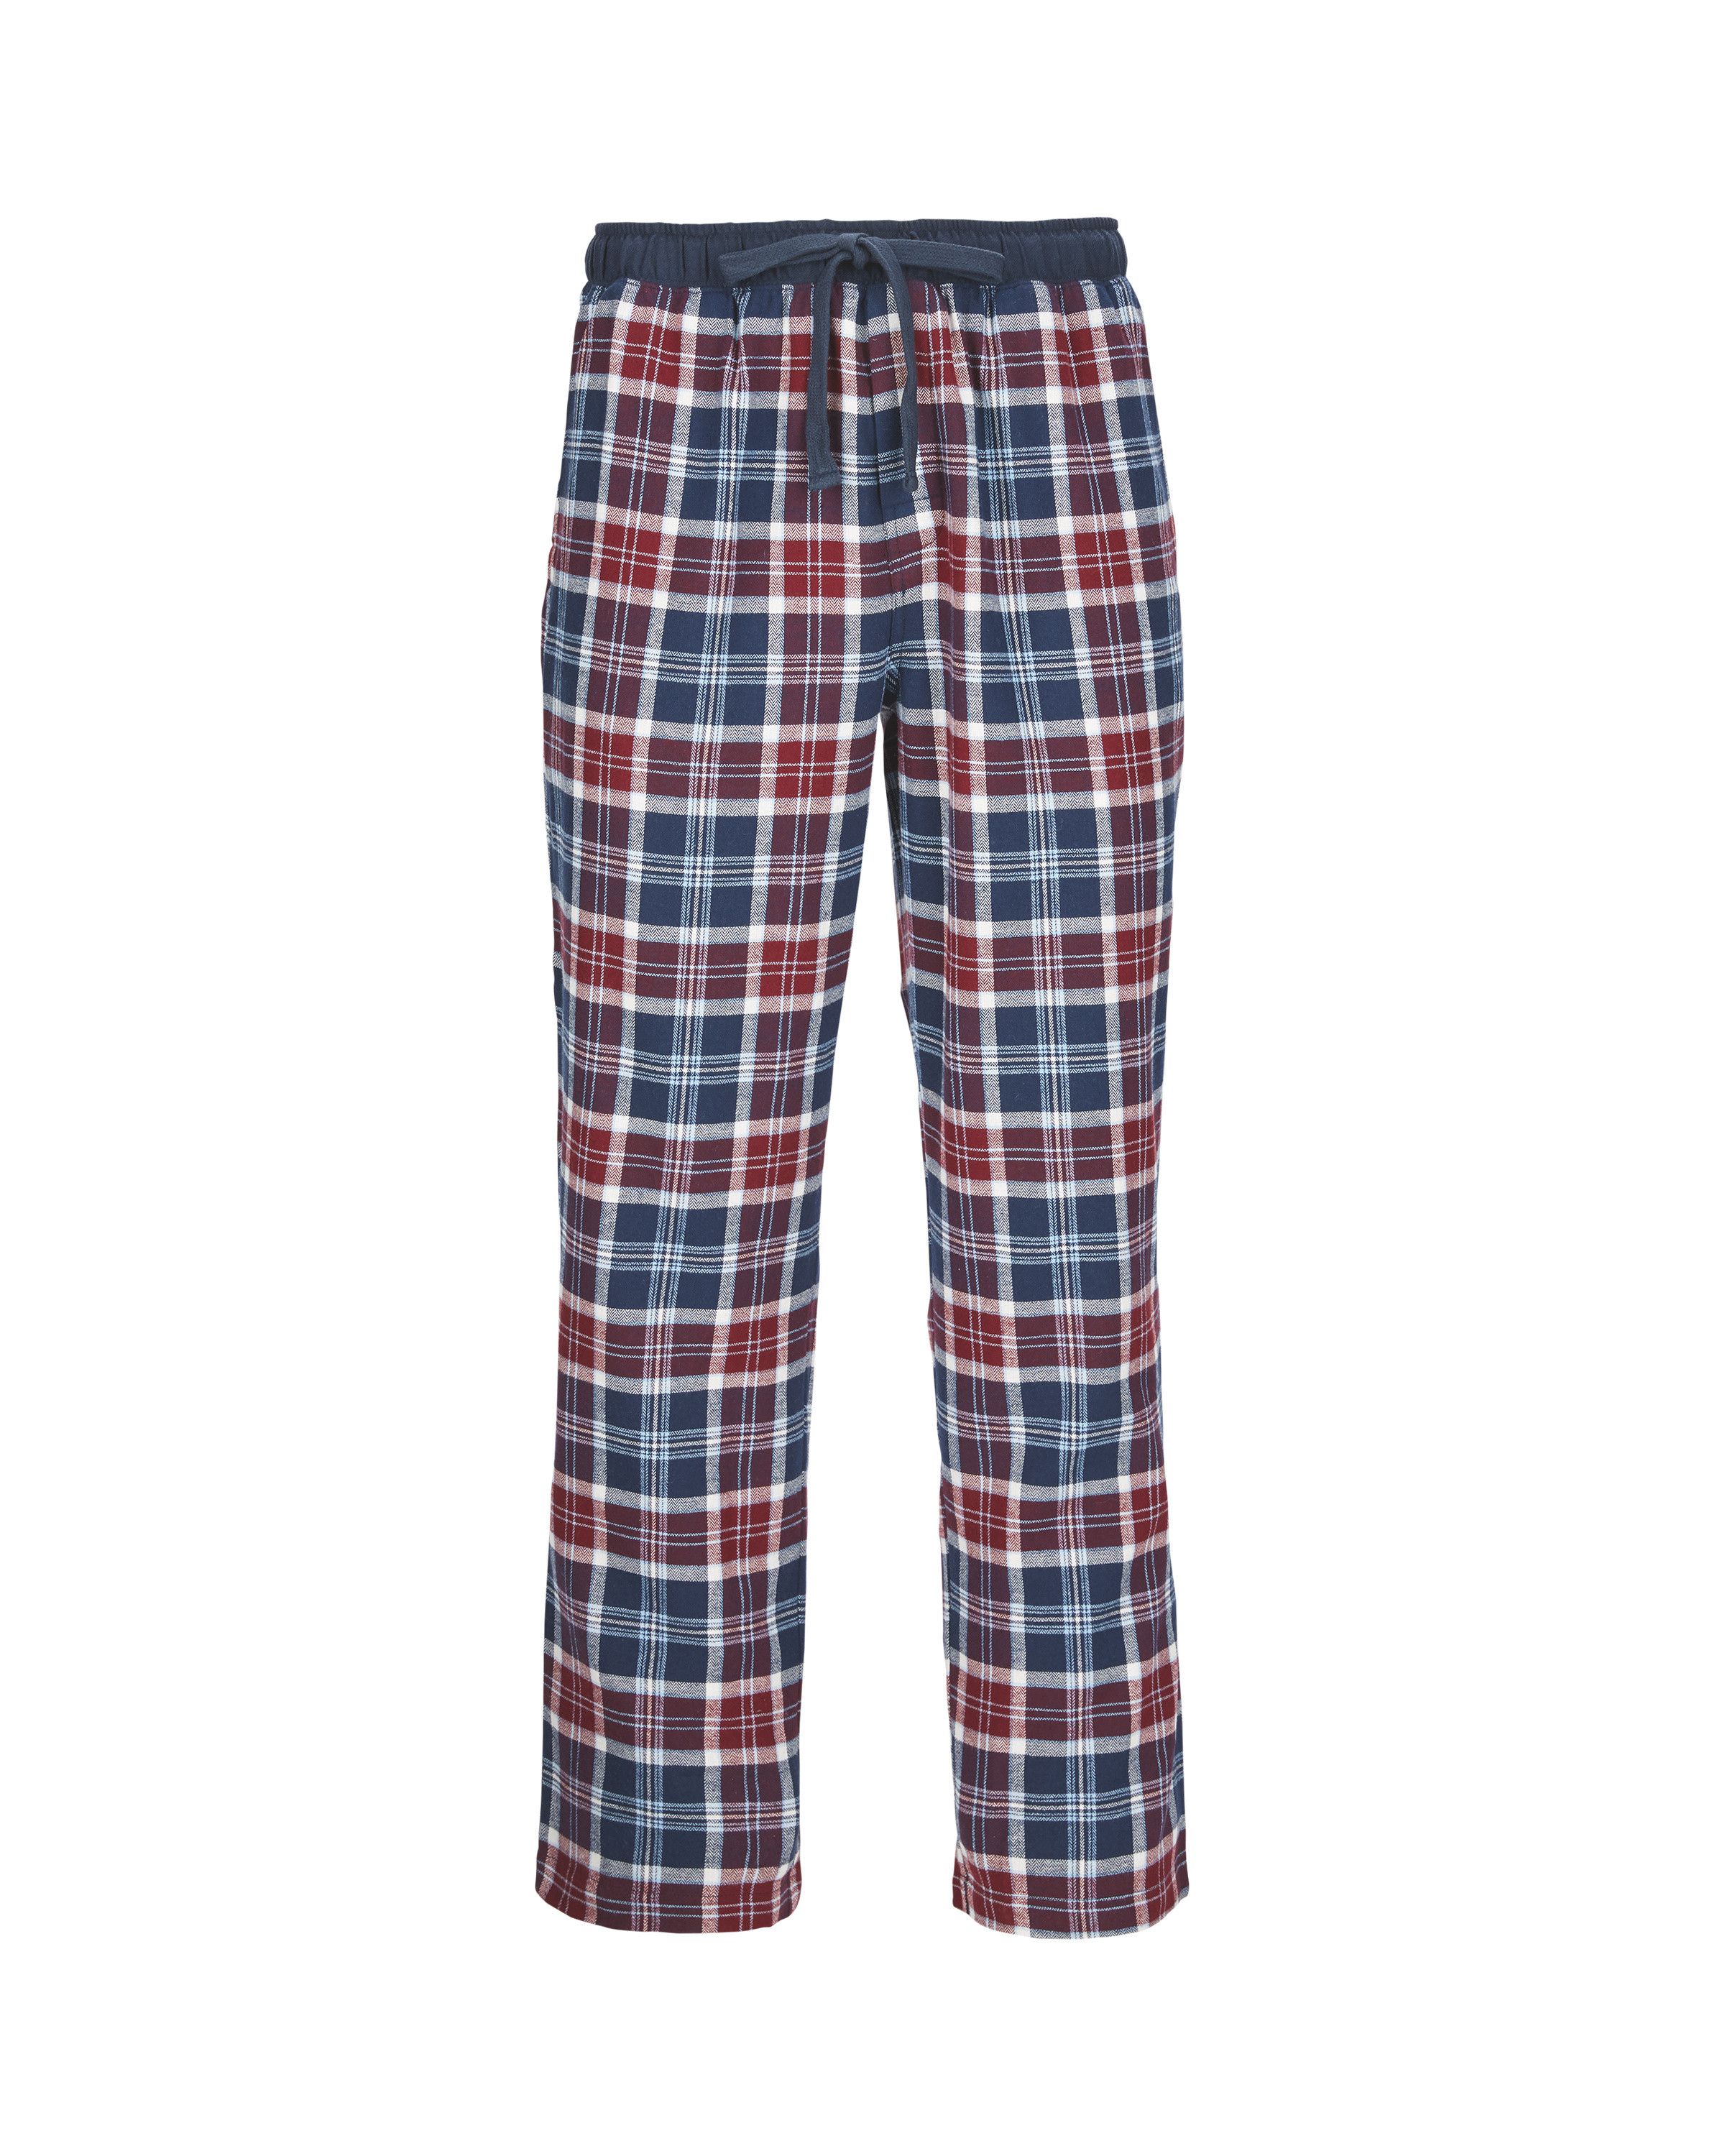 9a9619b2f12 Men s Flannel Lounge Pants Navy Red - ALDI UK